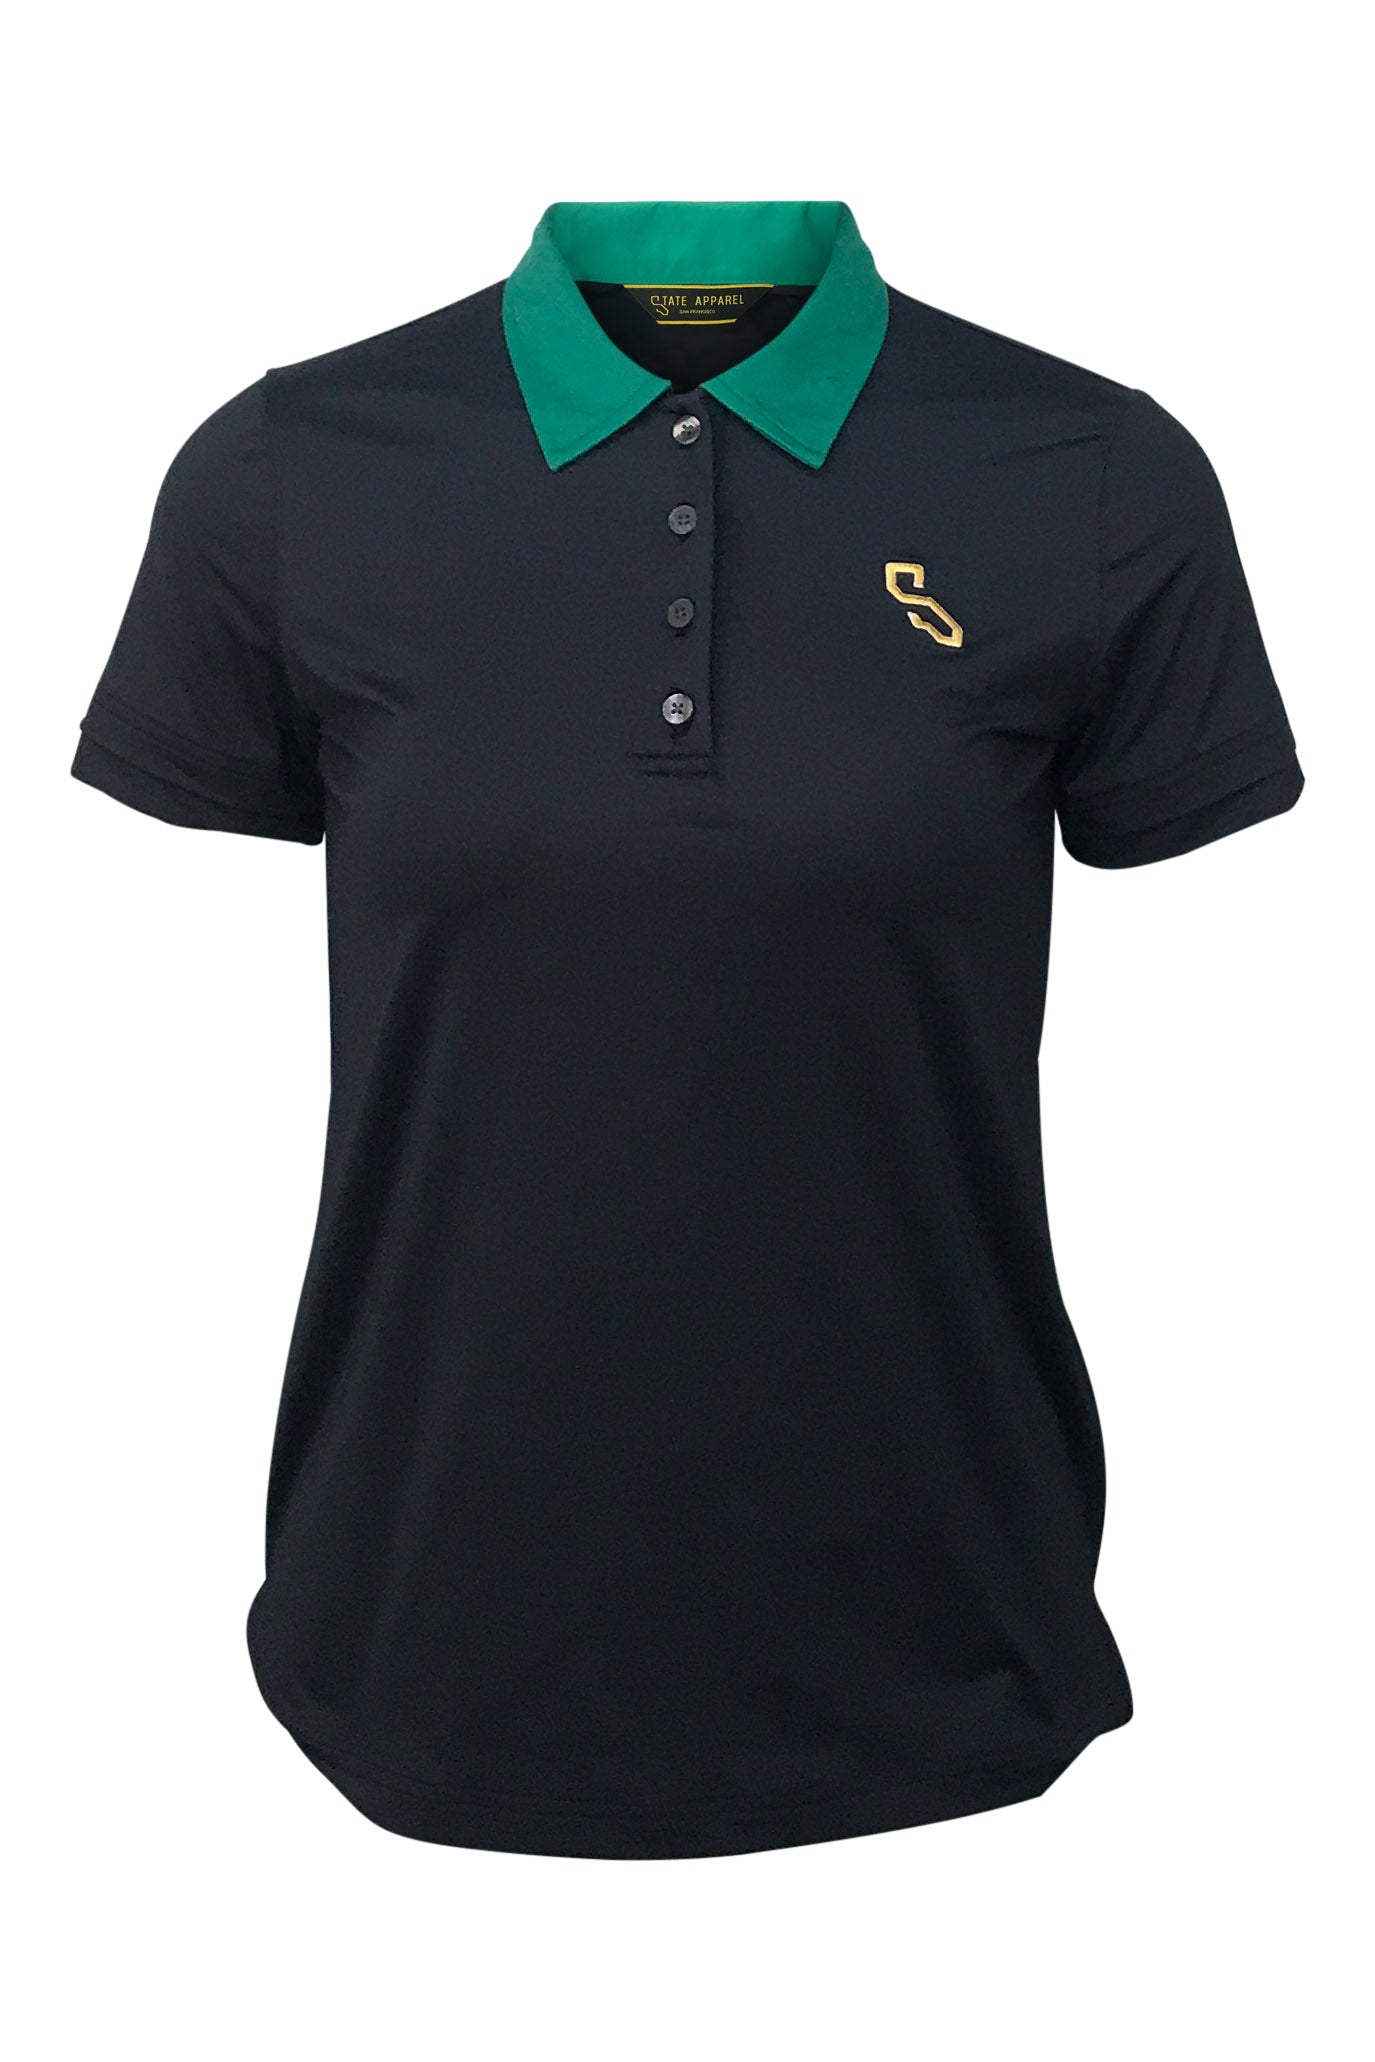 PIXLEY POLO - GREEN COLLAR